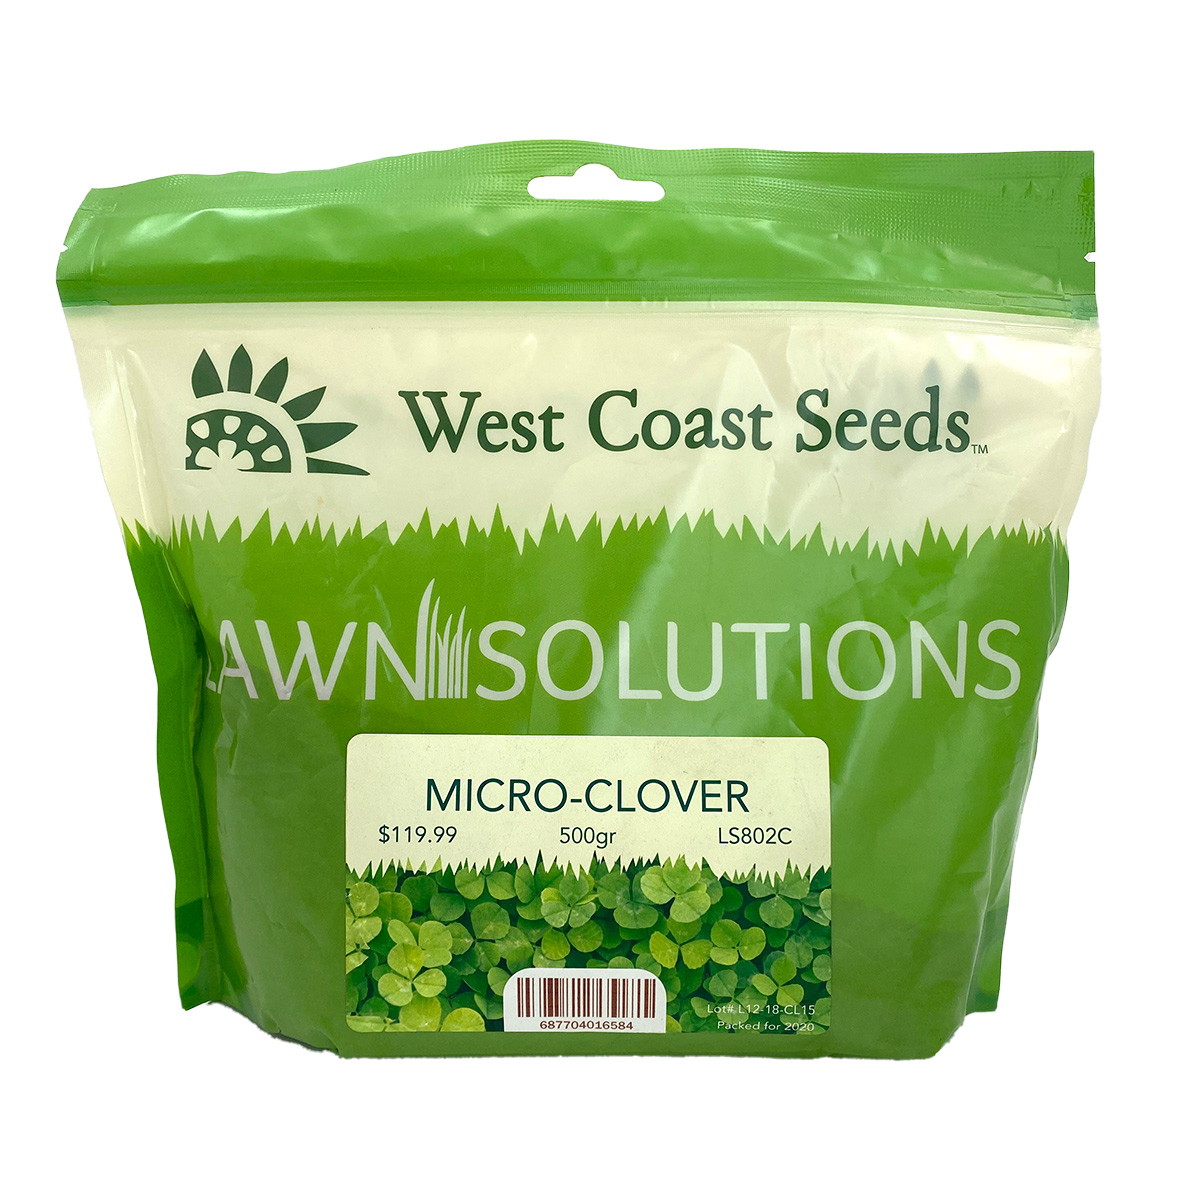 Lawn Solutions Microclover Bulk 500g